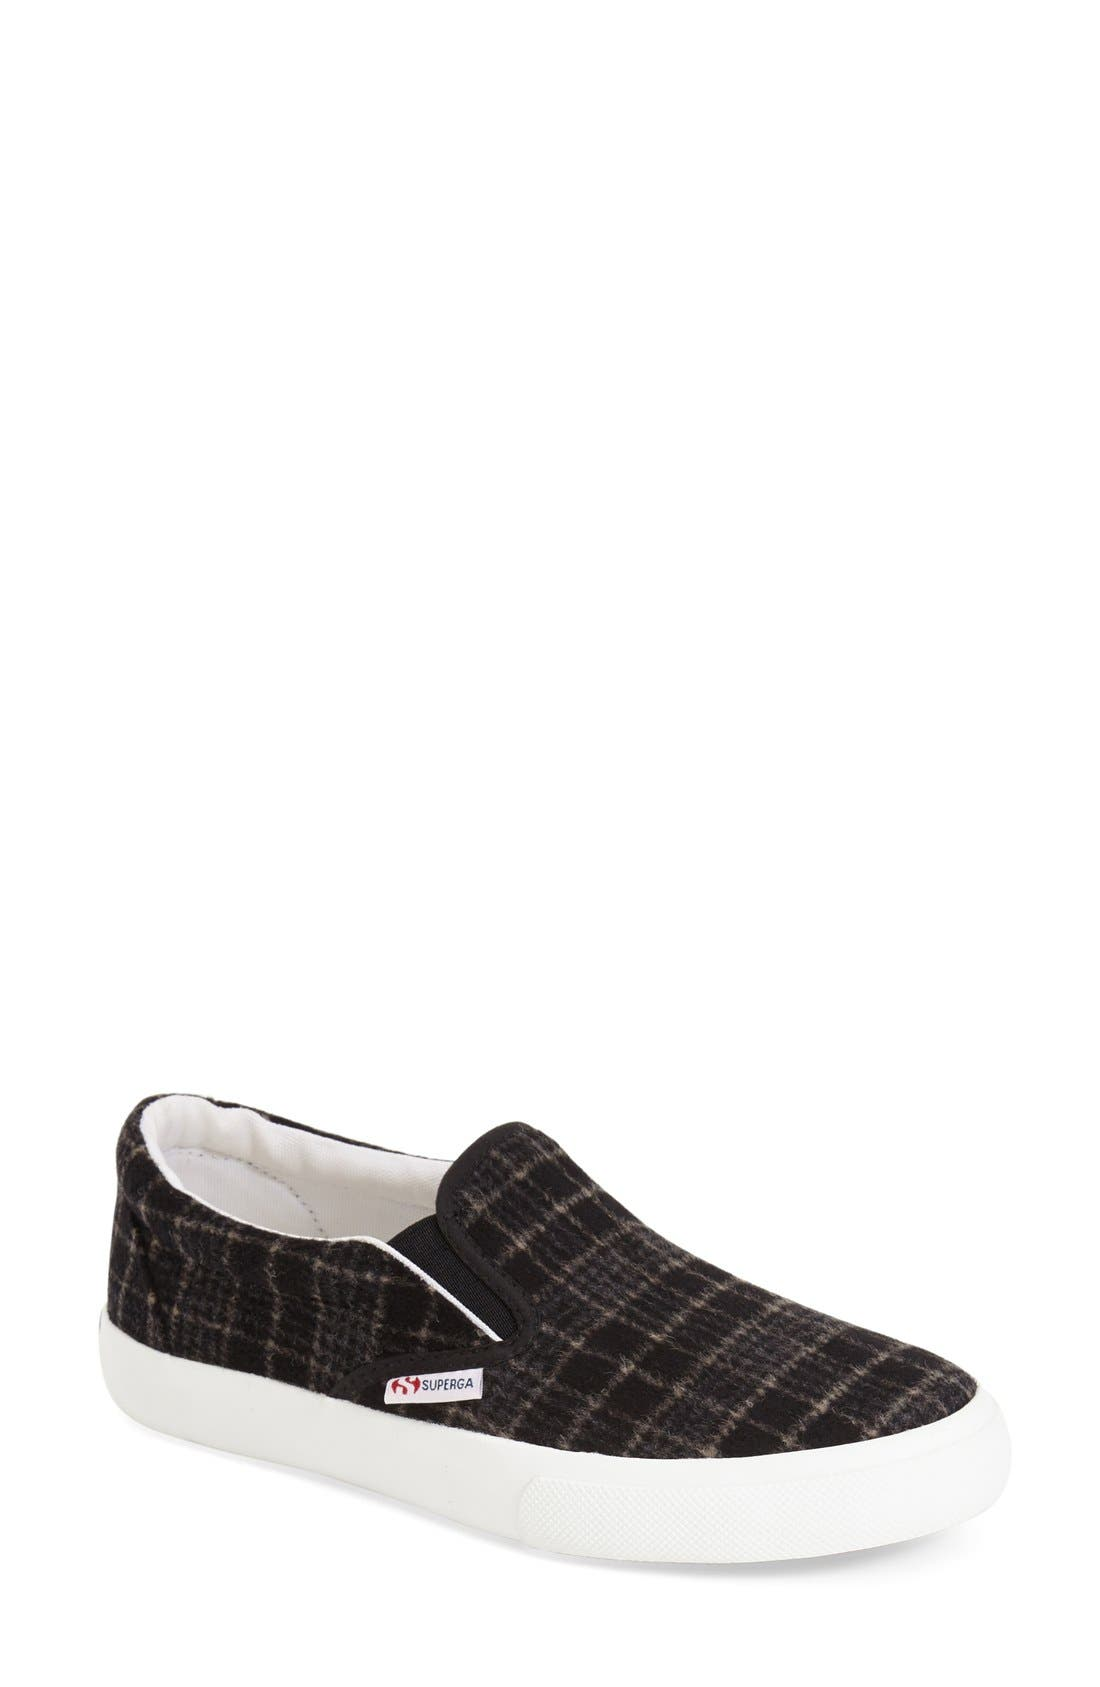 Alternate Image 1 Selected - Superga Slip-On Sneaker (Women)